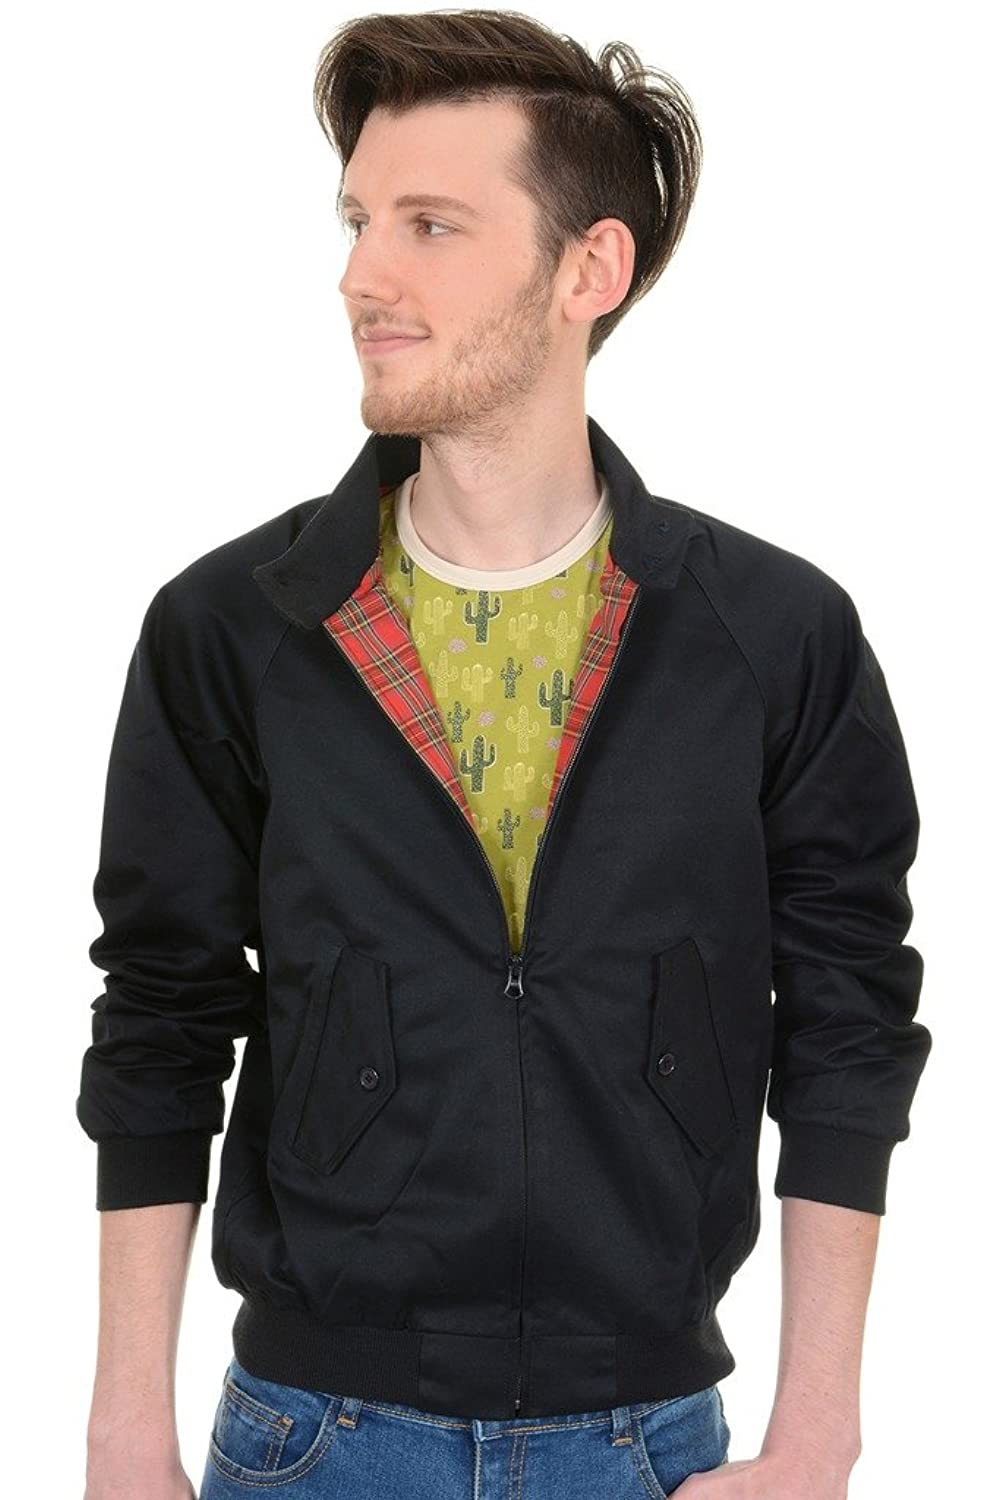 60s 70s Men's Jackets & Sweaters Mens Run & Fly 60s Retro Mod Navy Harrington Jacket $49.95 AT vintagedancer.com